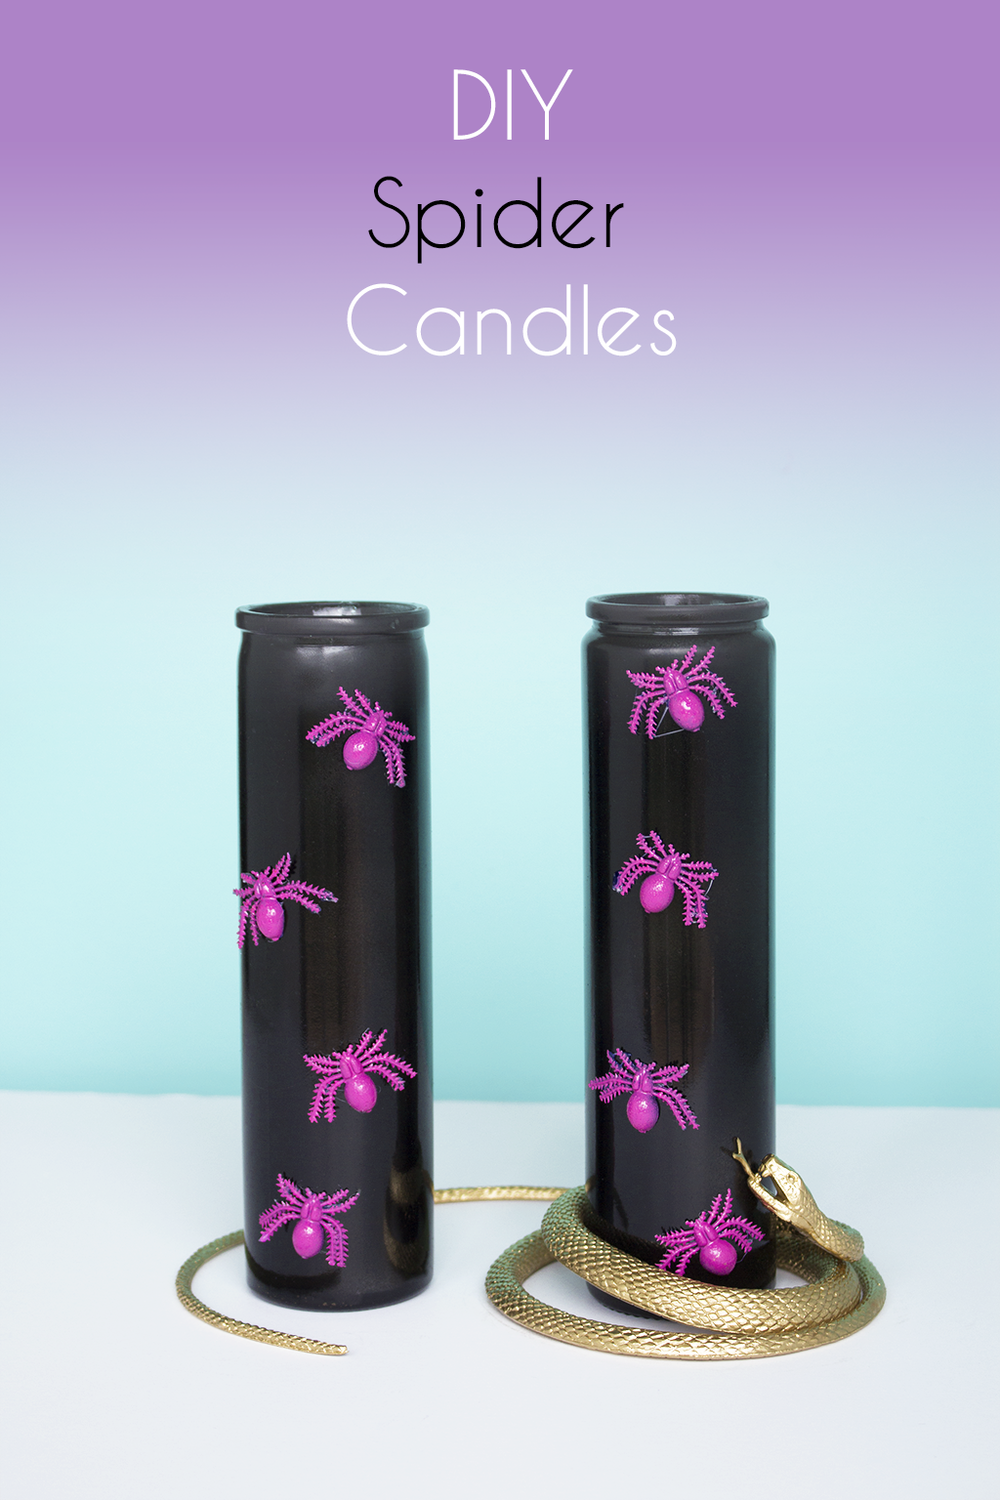 DIY Halloween Project - Spider Candles